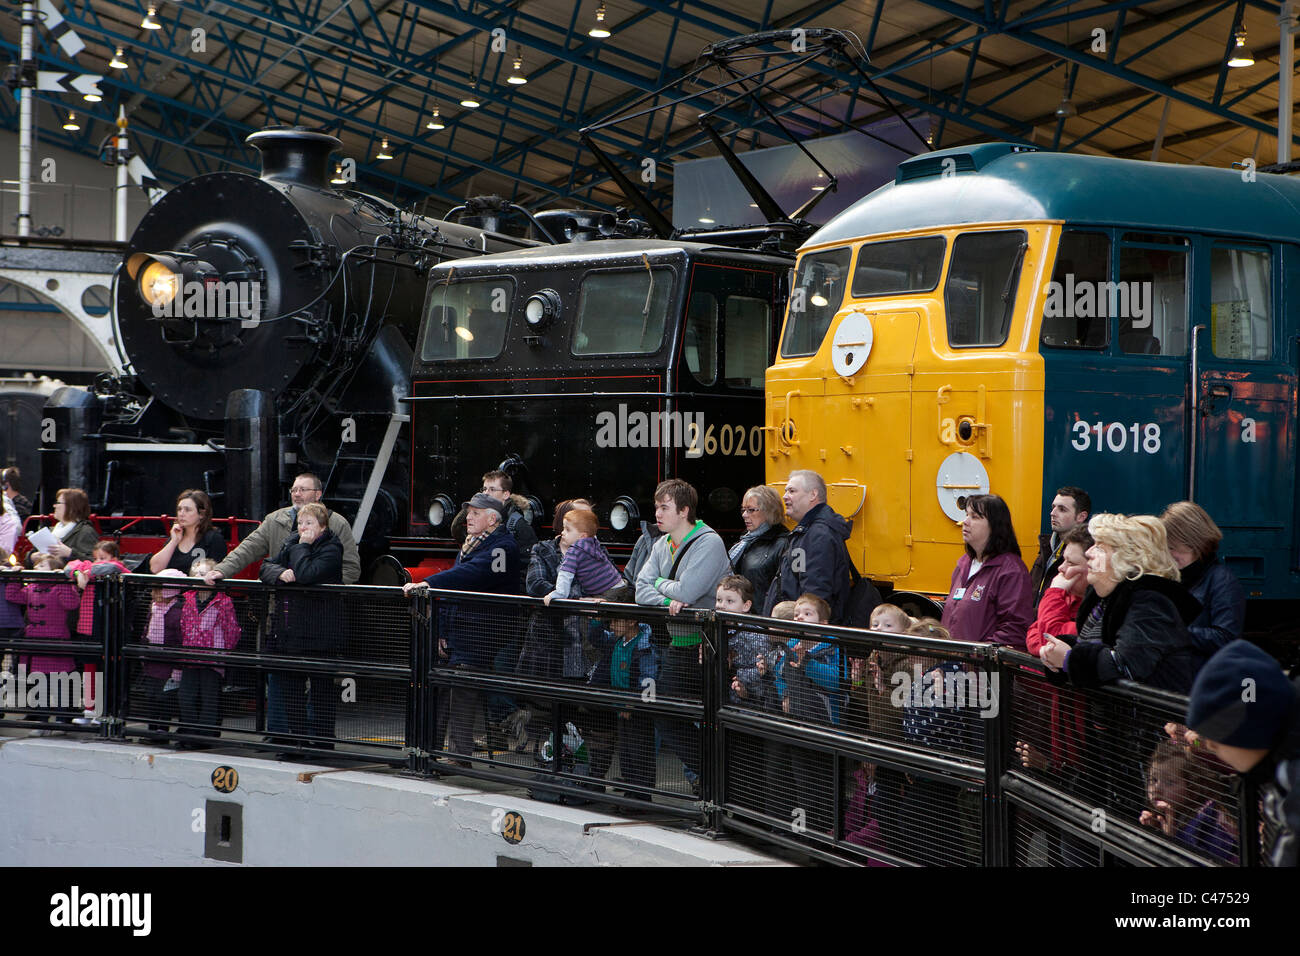 Exhibits at the National Railway Museum in York - Stock Image